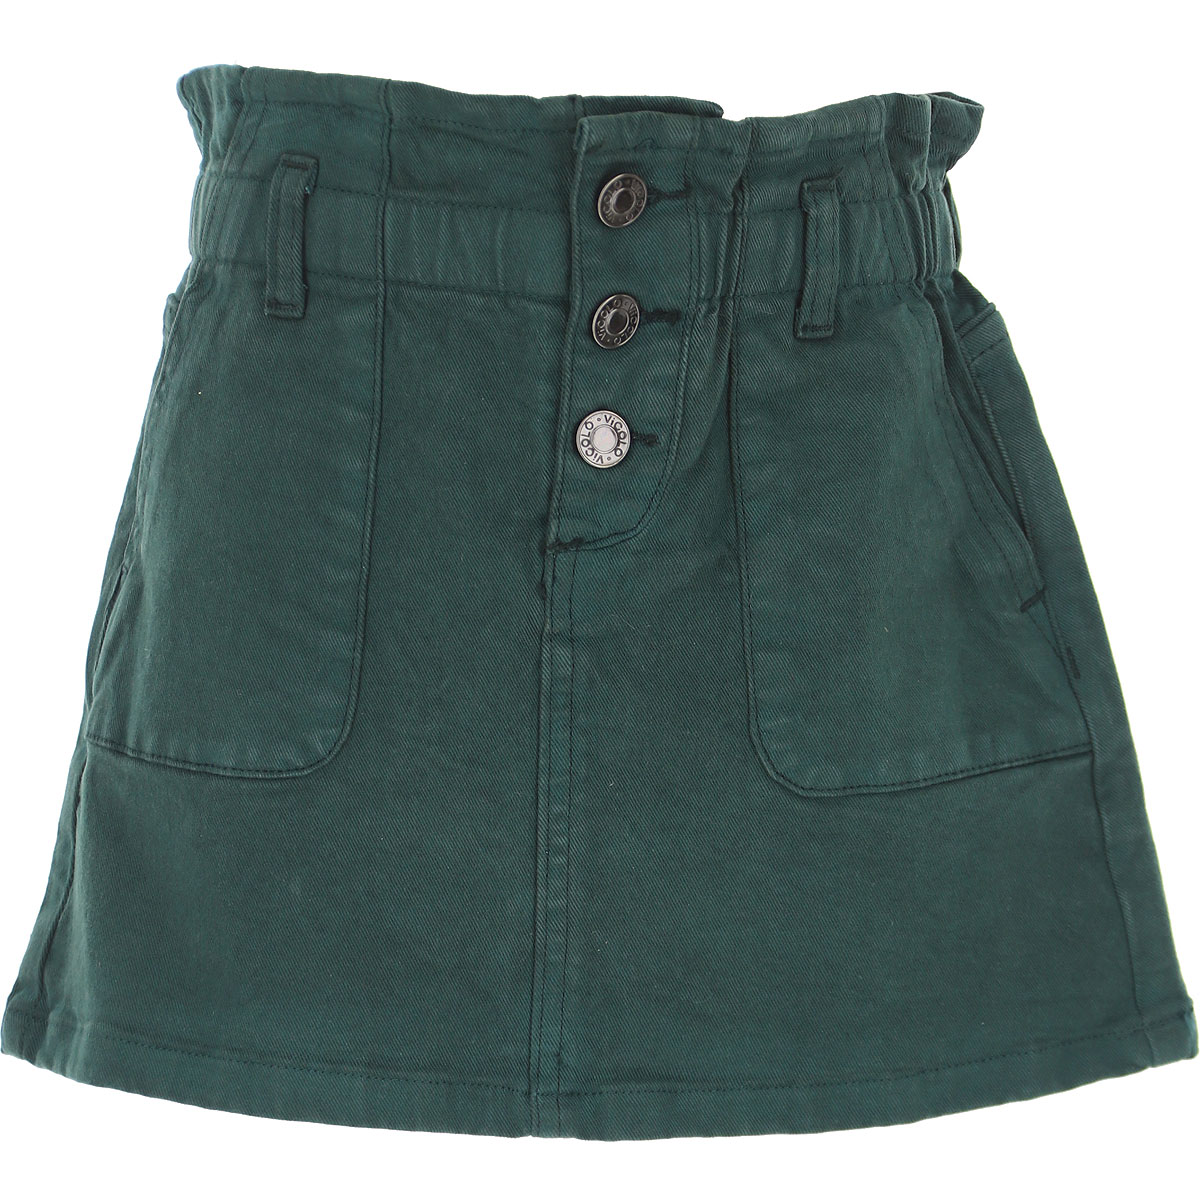 Vicolo Kids Shorts for Girls On Sale, Autumn Green, Cotton, 2019, 12Y 14Y 6Y